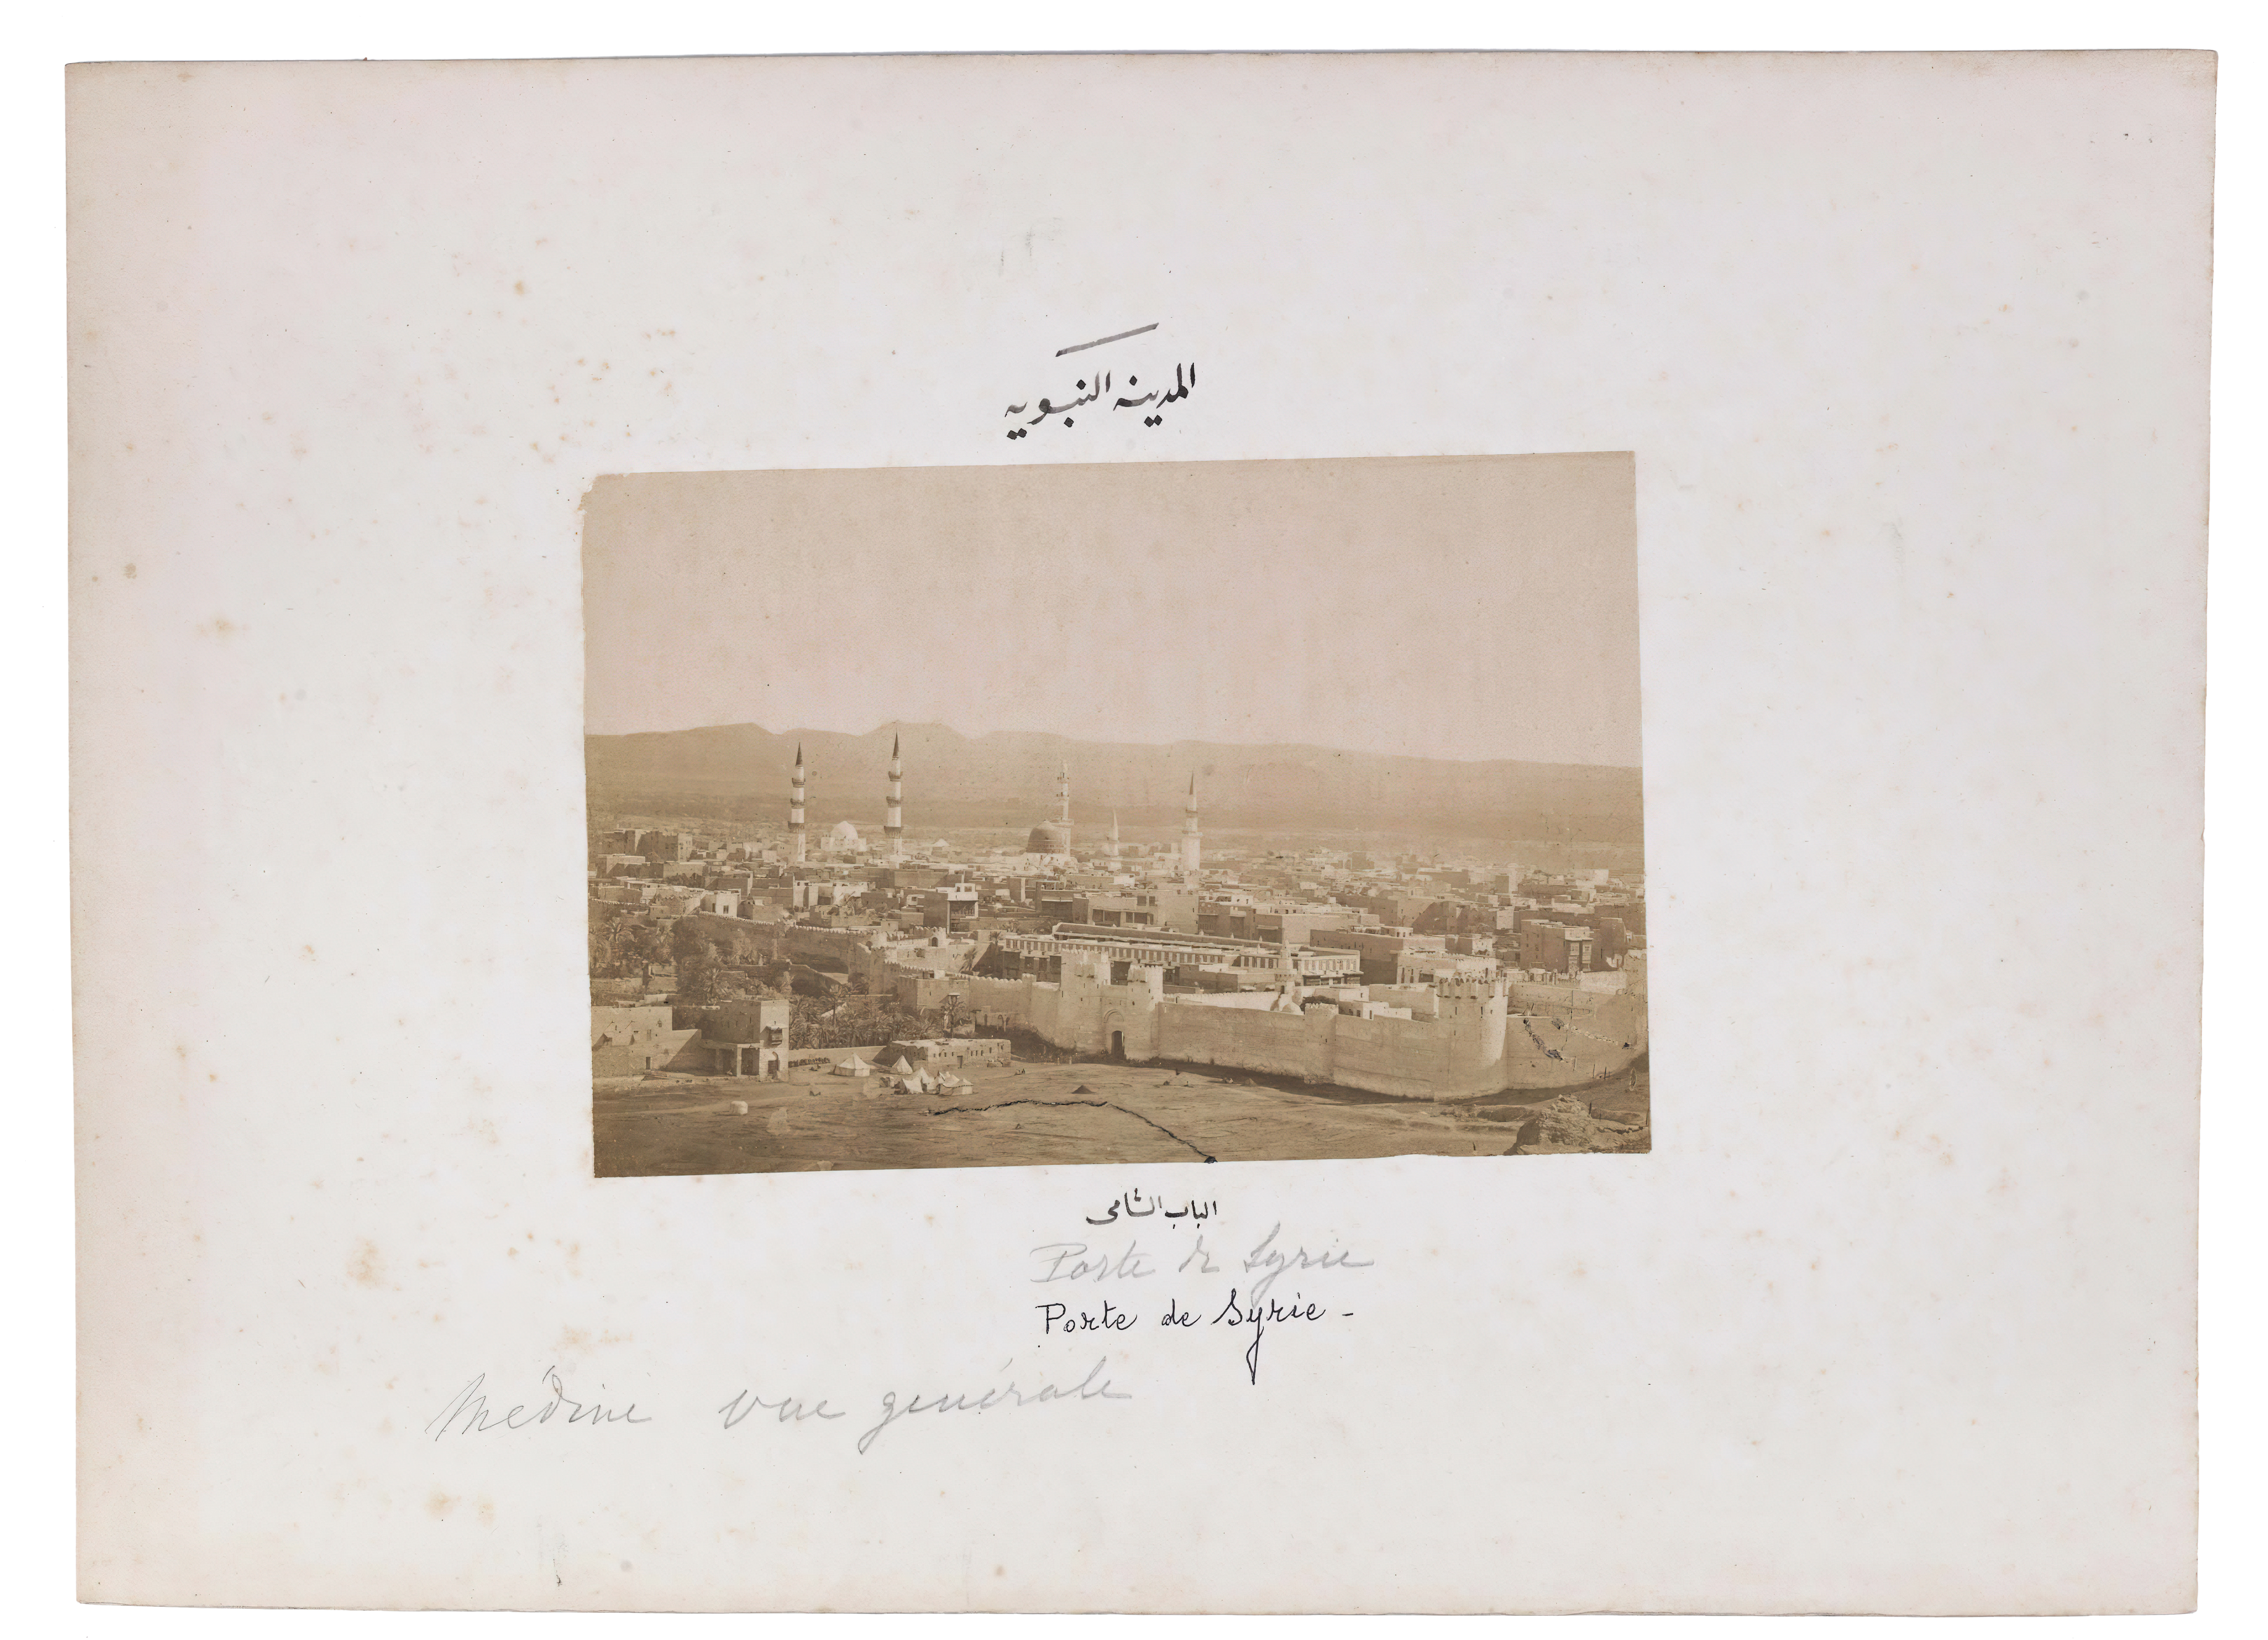 General view of Medina by Sadic Bey, the first photographer of Mecca and Medina